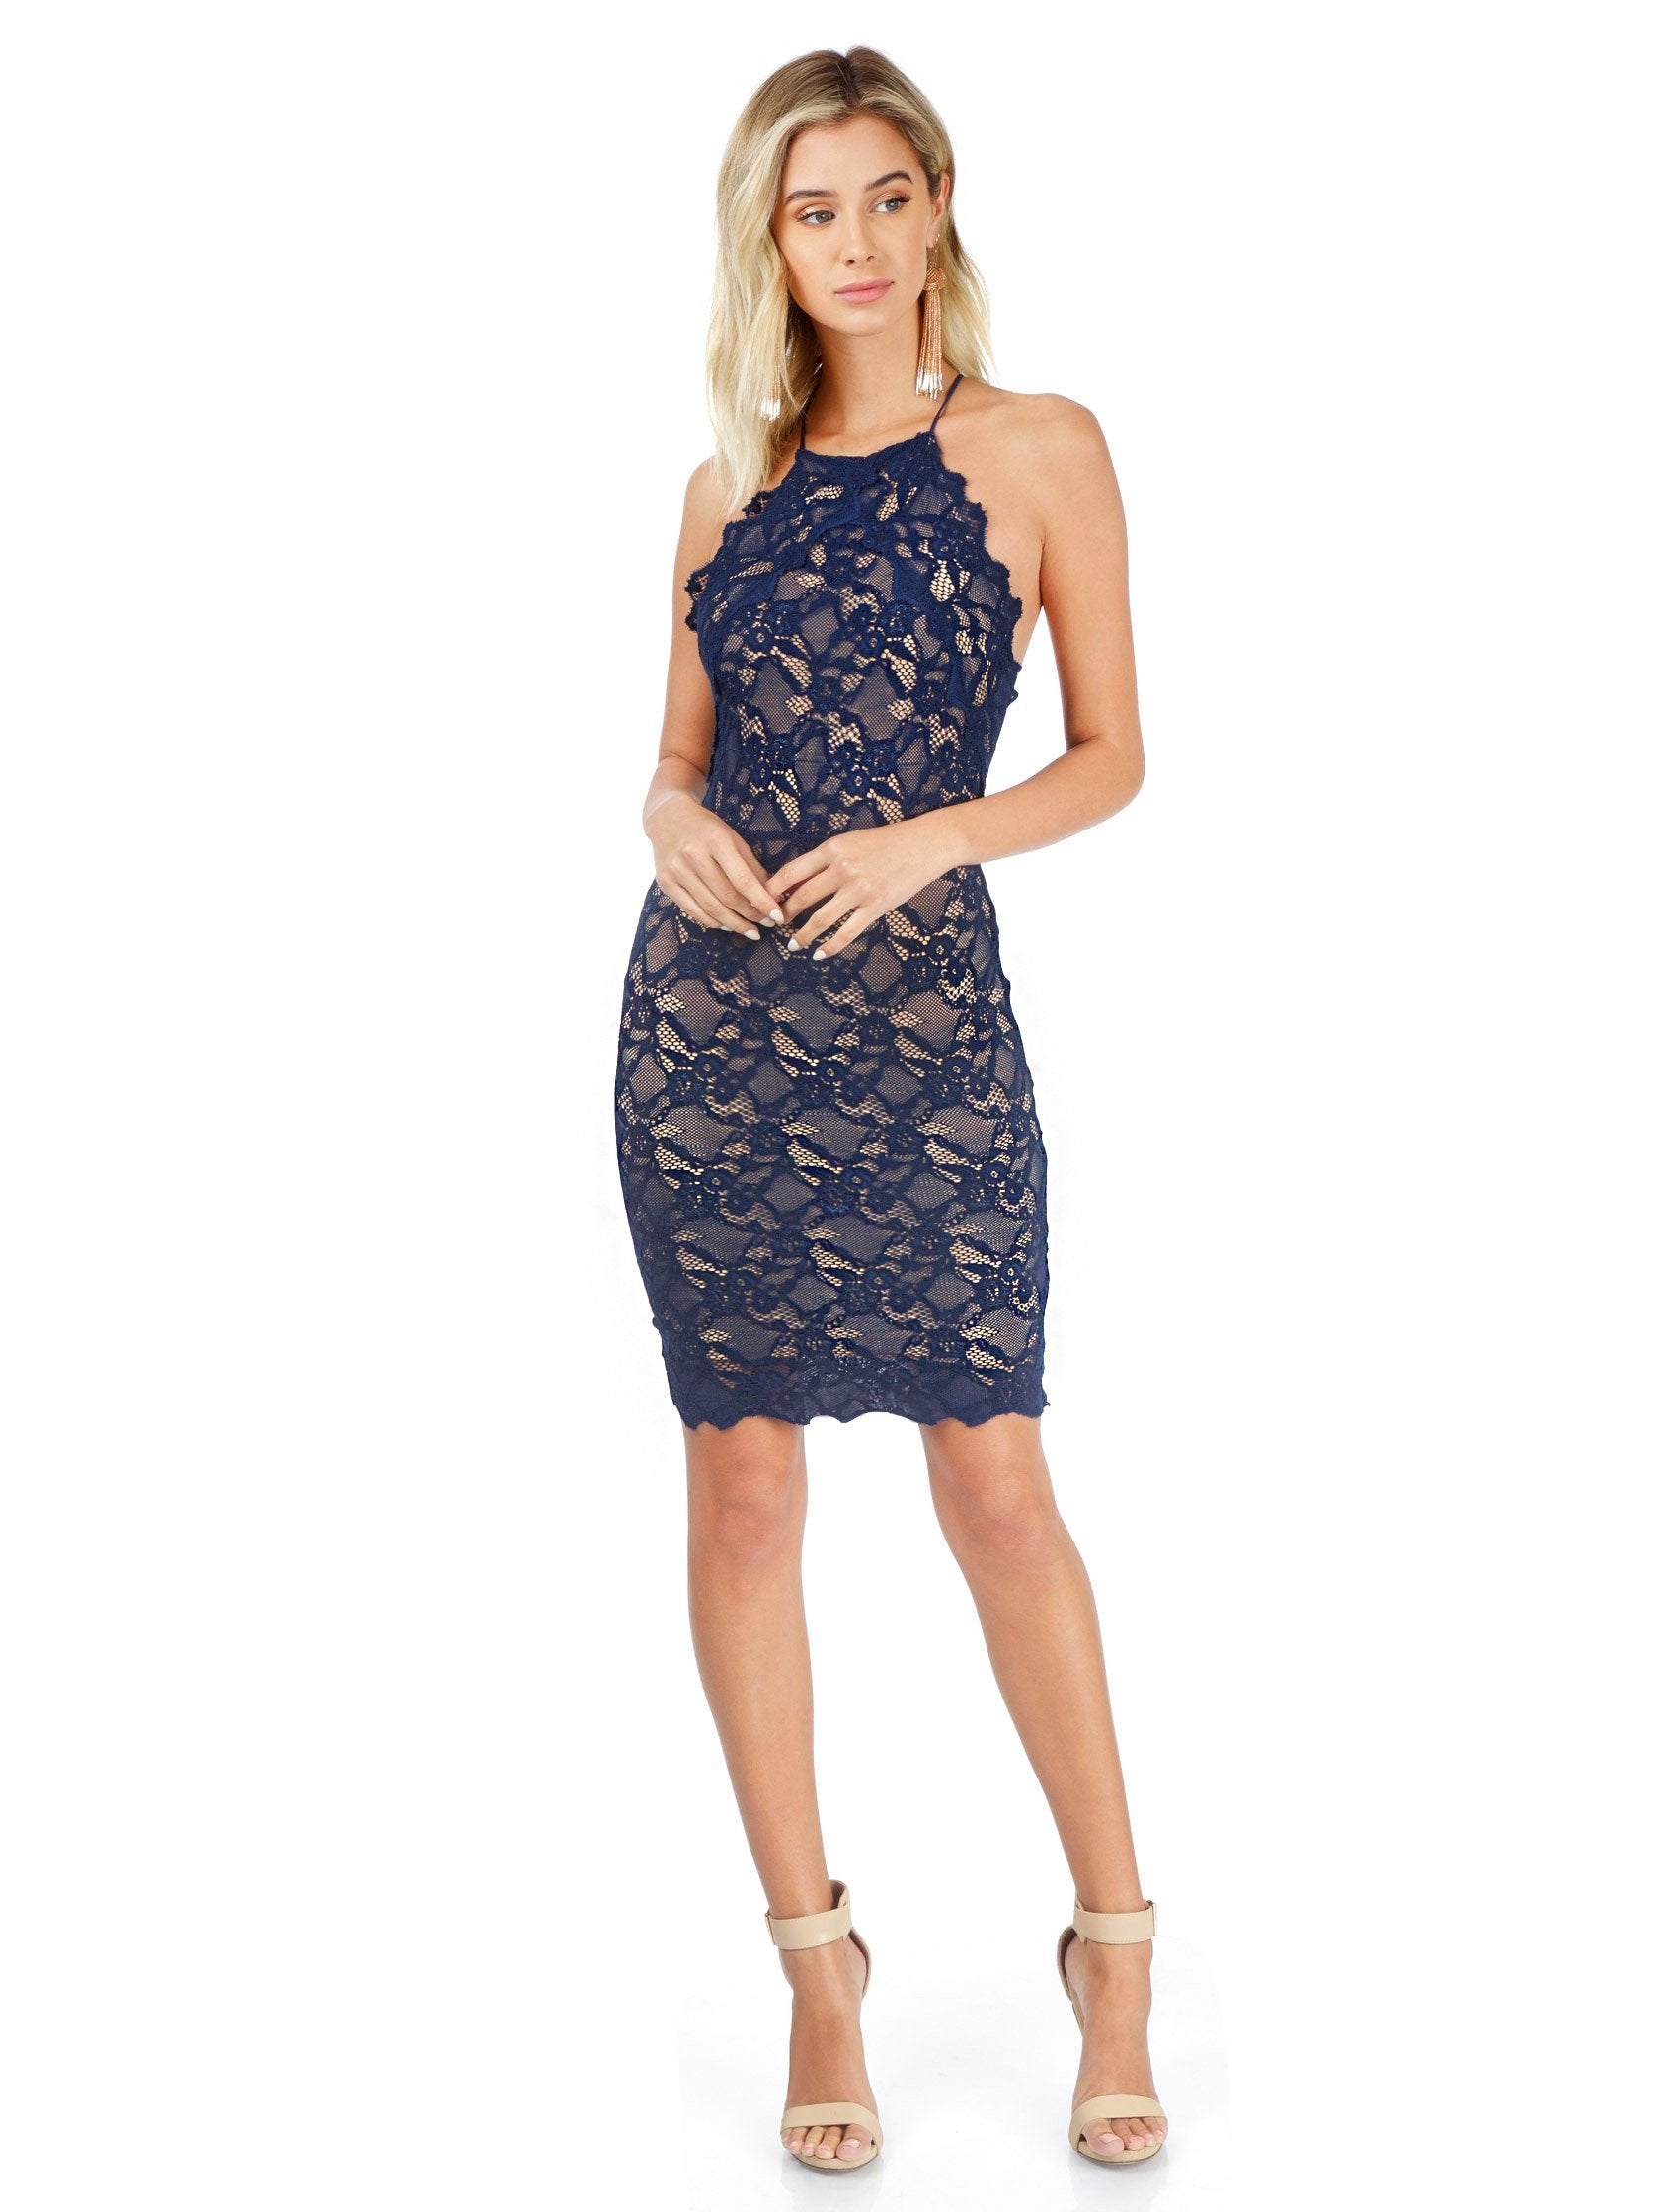 Girl outfit in a dress rental from Nightcap Clothing called Navy Drive Me Home Mini Dress